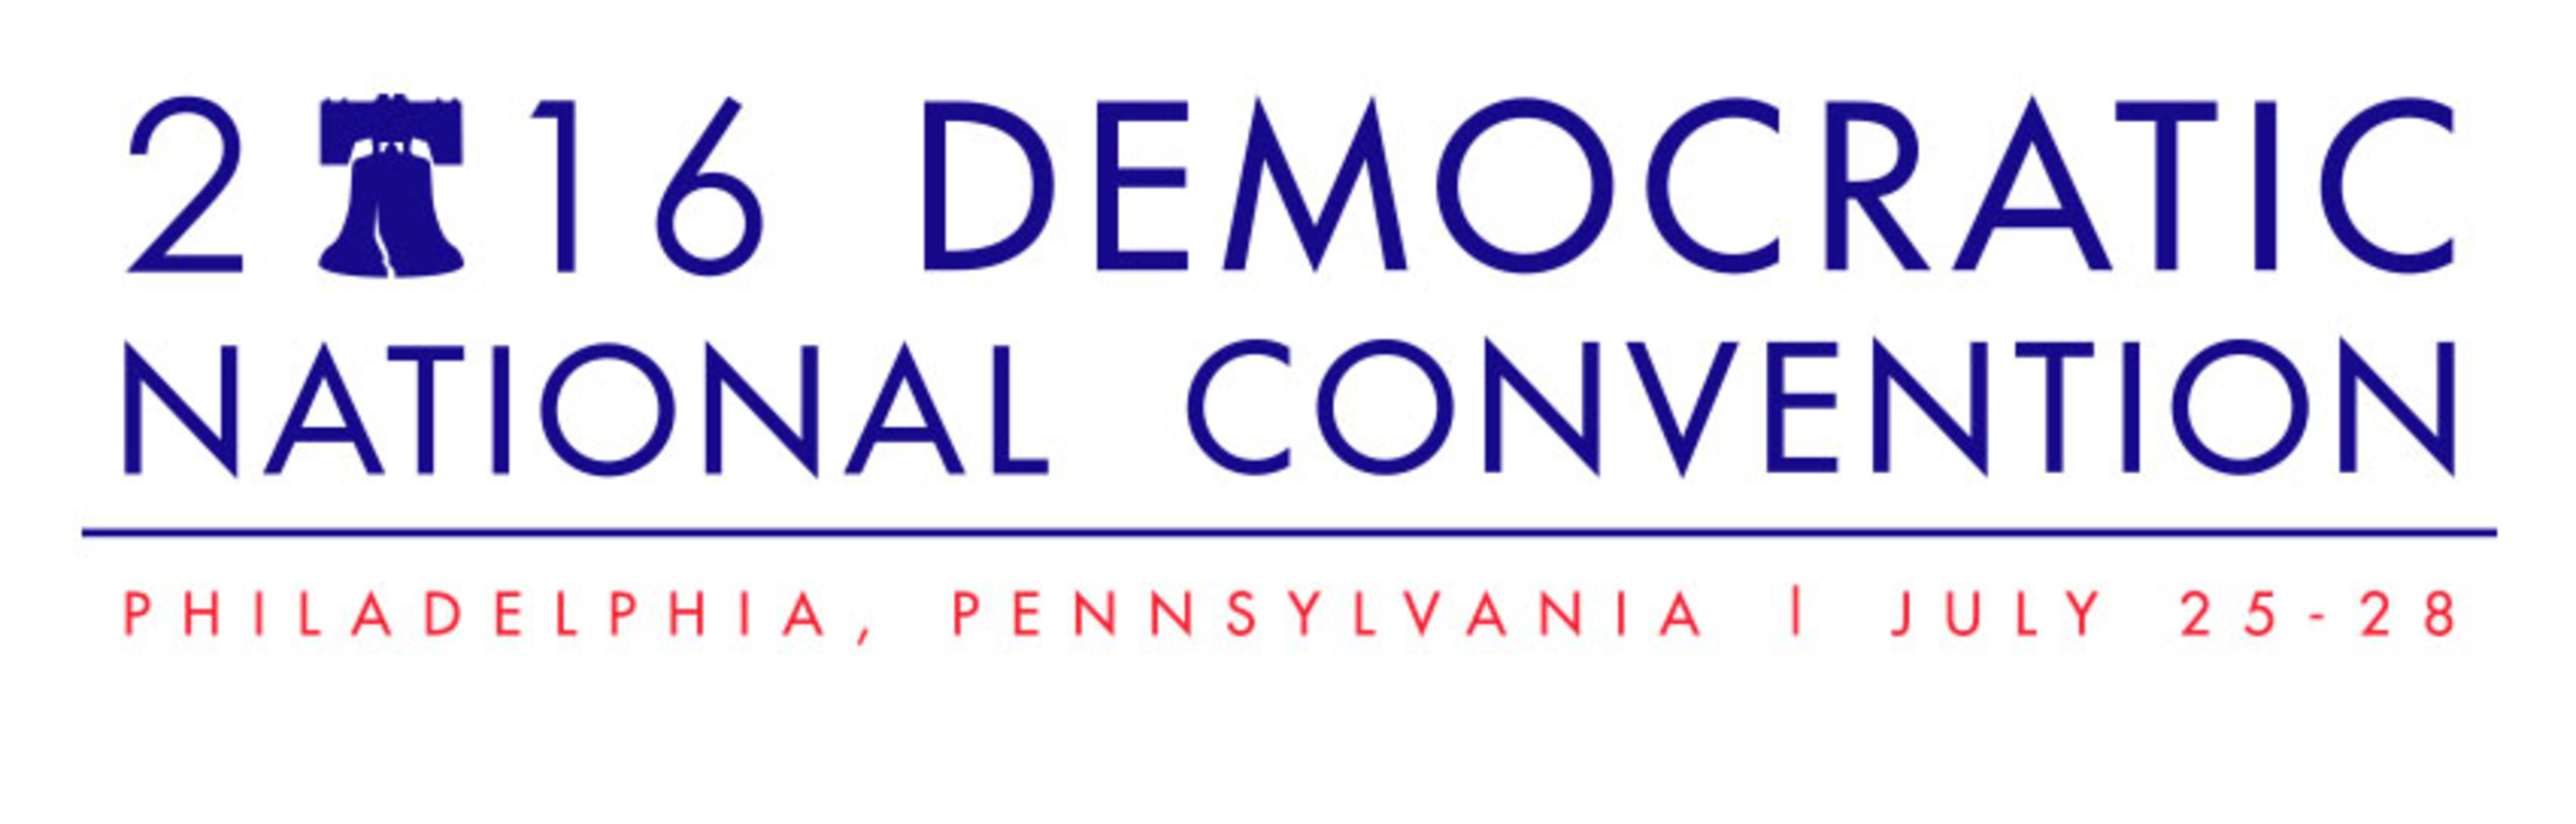 Democratic National Convention Committee Launches New, Cutting-Edge DemConvention.com